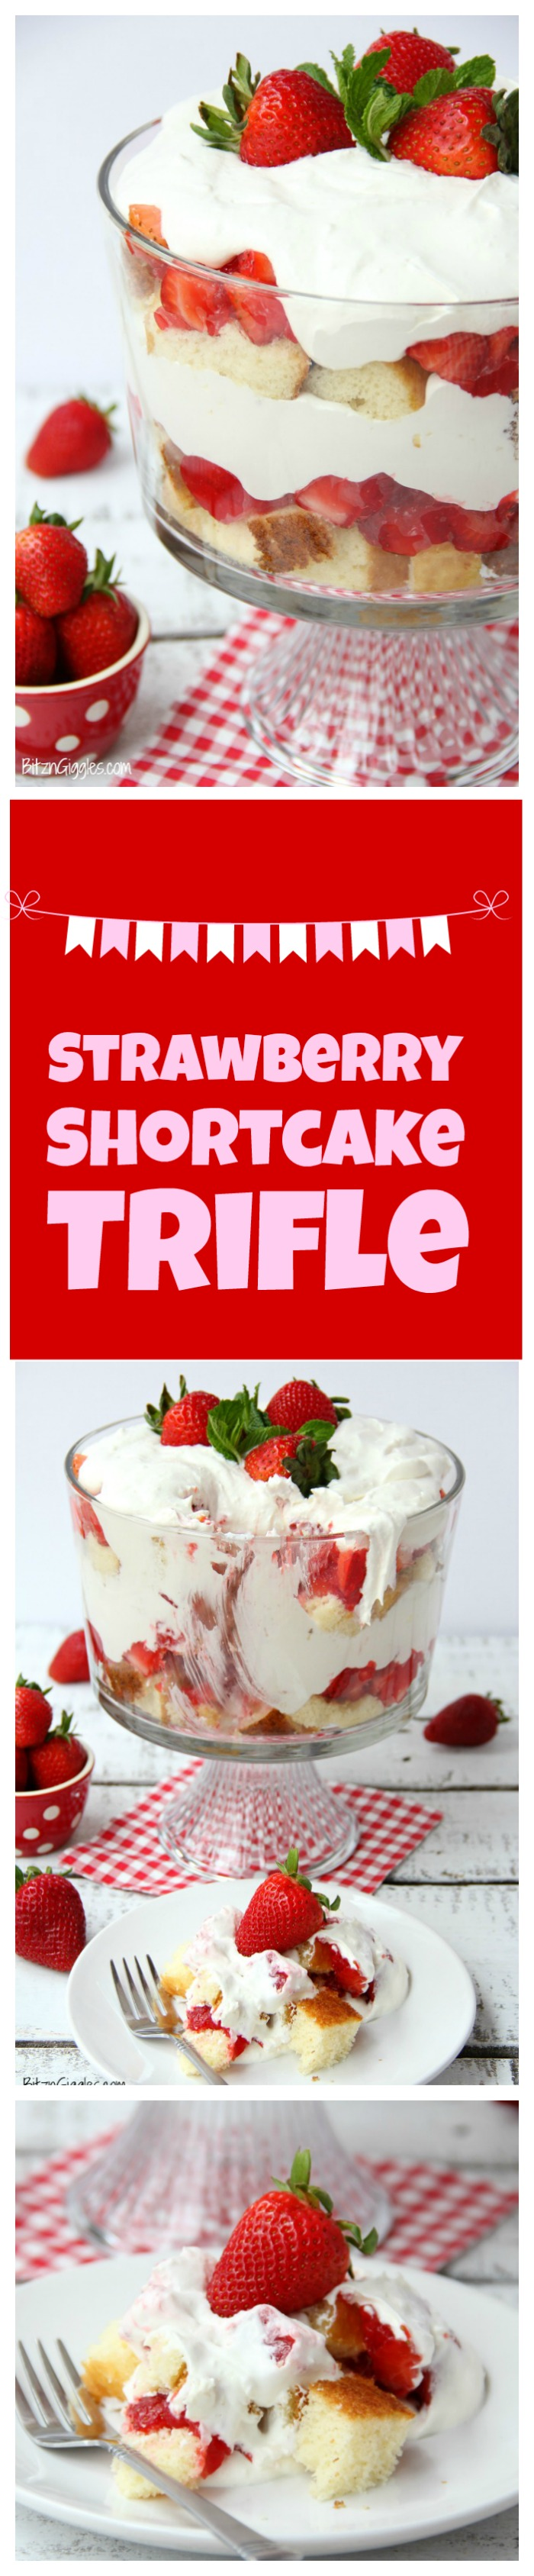 Strawberry Shortcake Trifle - A beautiful and delicious trifle layered with vanilla cake, homemade strawberry glaze and cream! Such a pretty dessert!